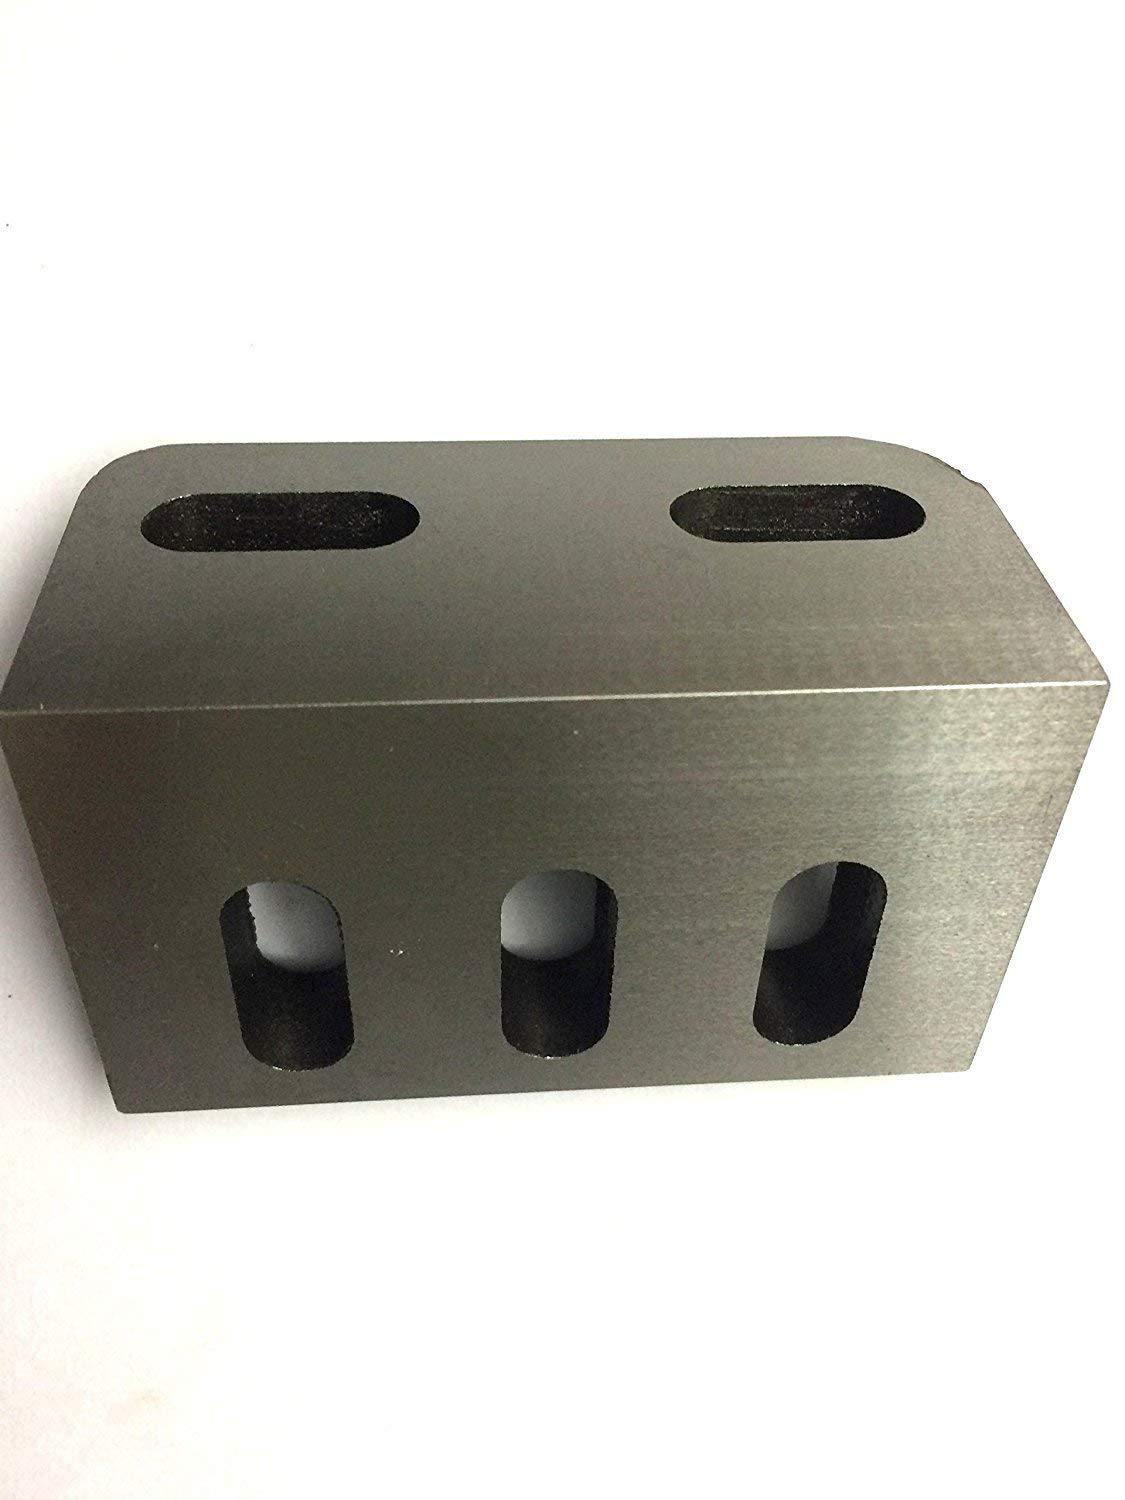 """Caste Iron Slotted Angle Plate 3/"""" x 2/"""" x 2.5/"""" Inches-Stress Relieved"""